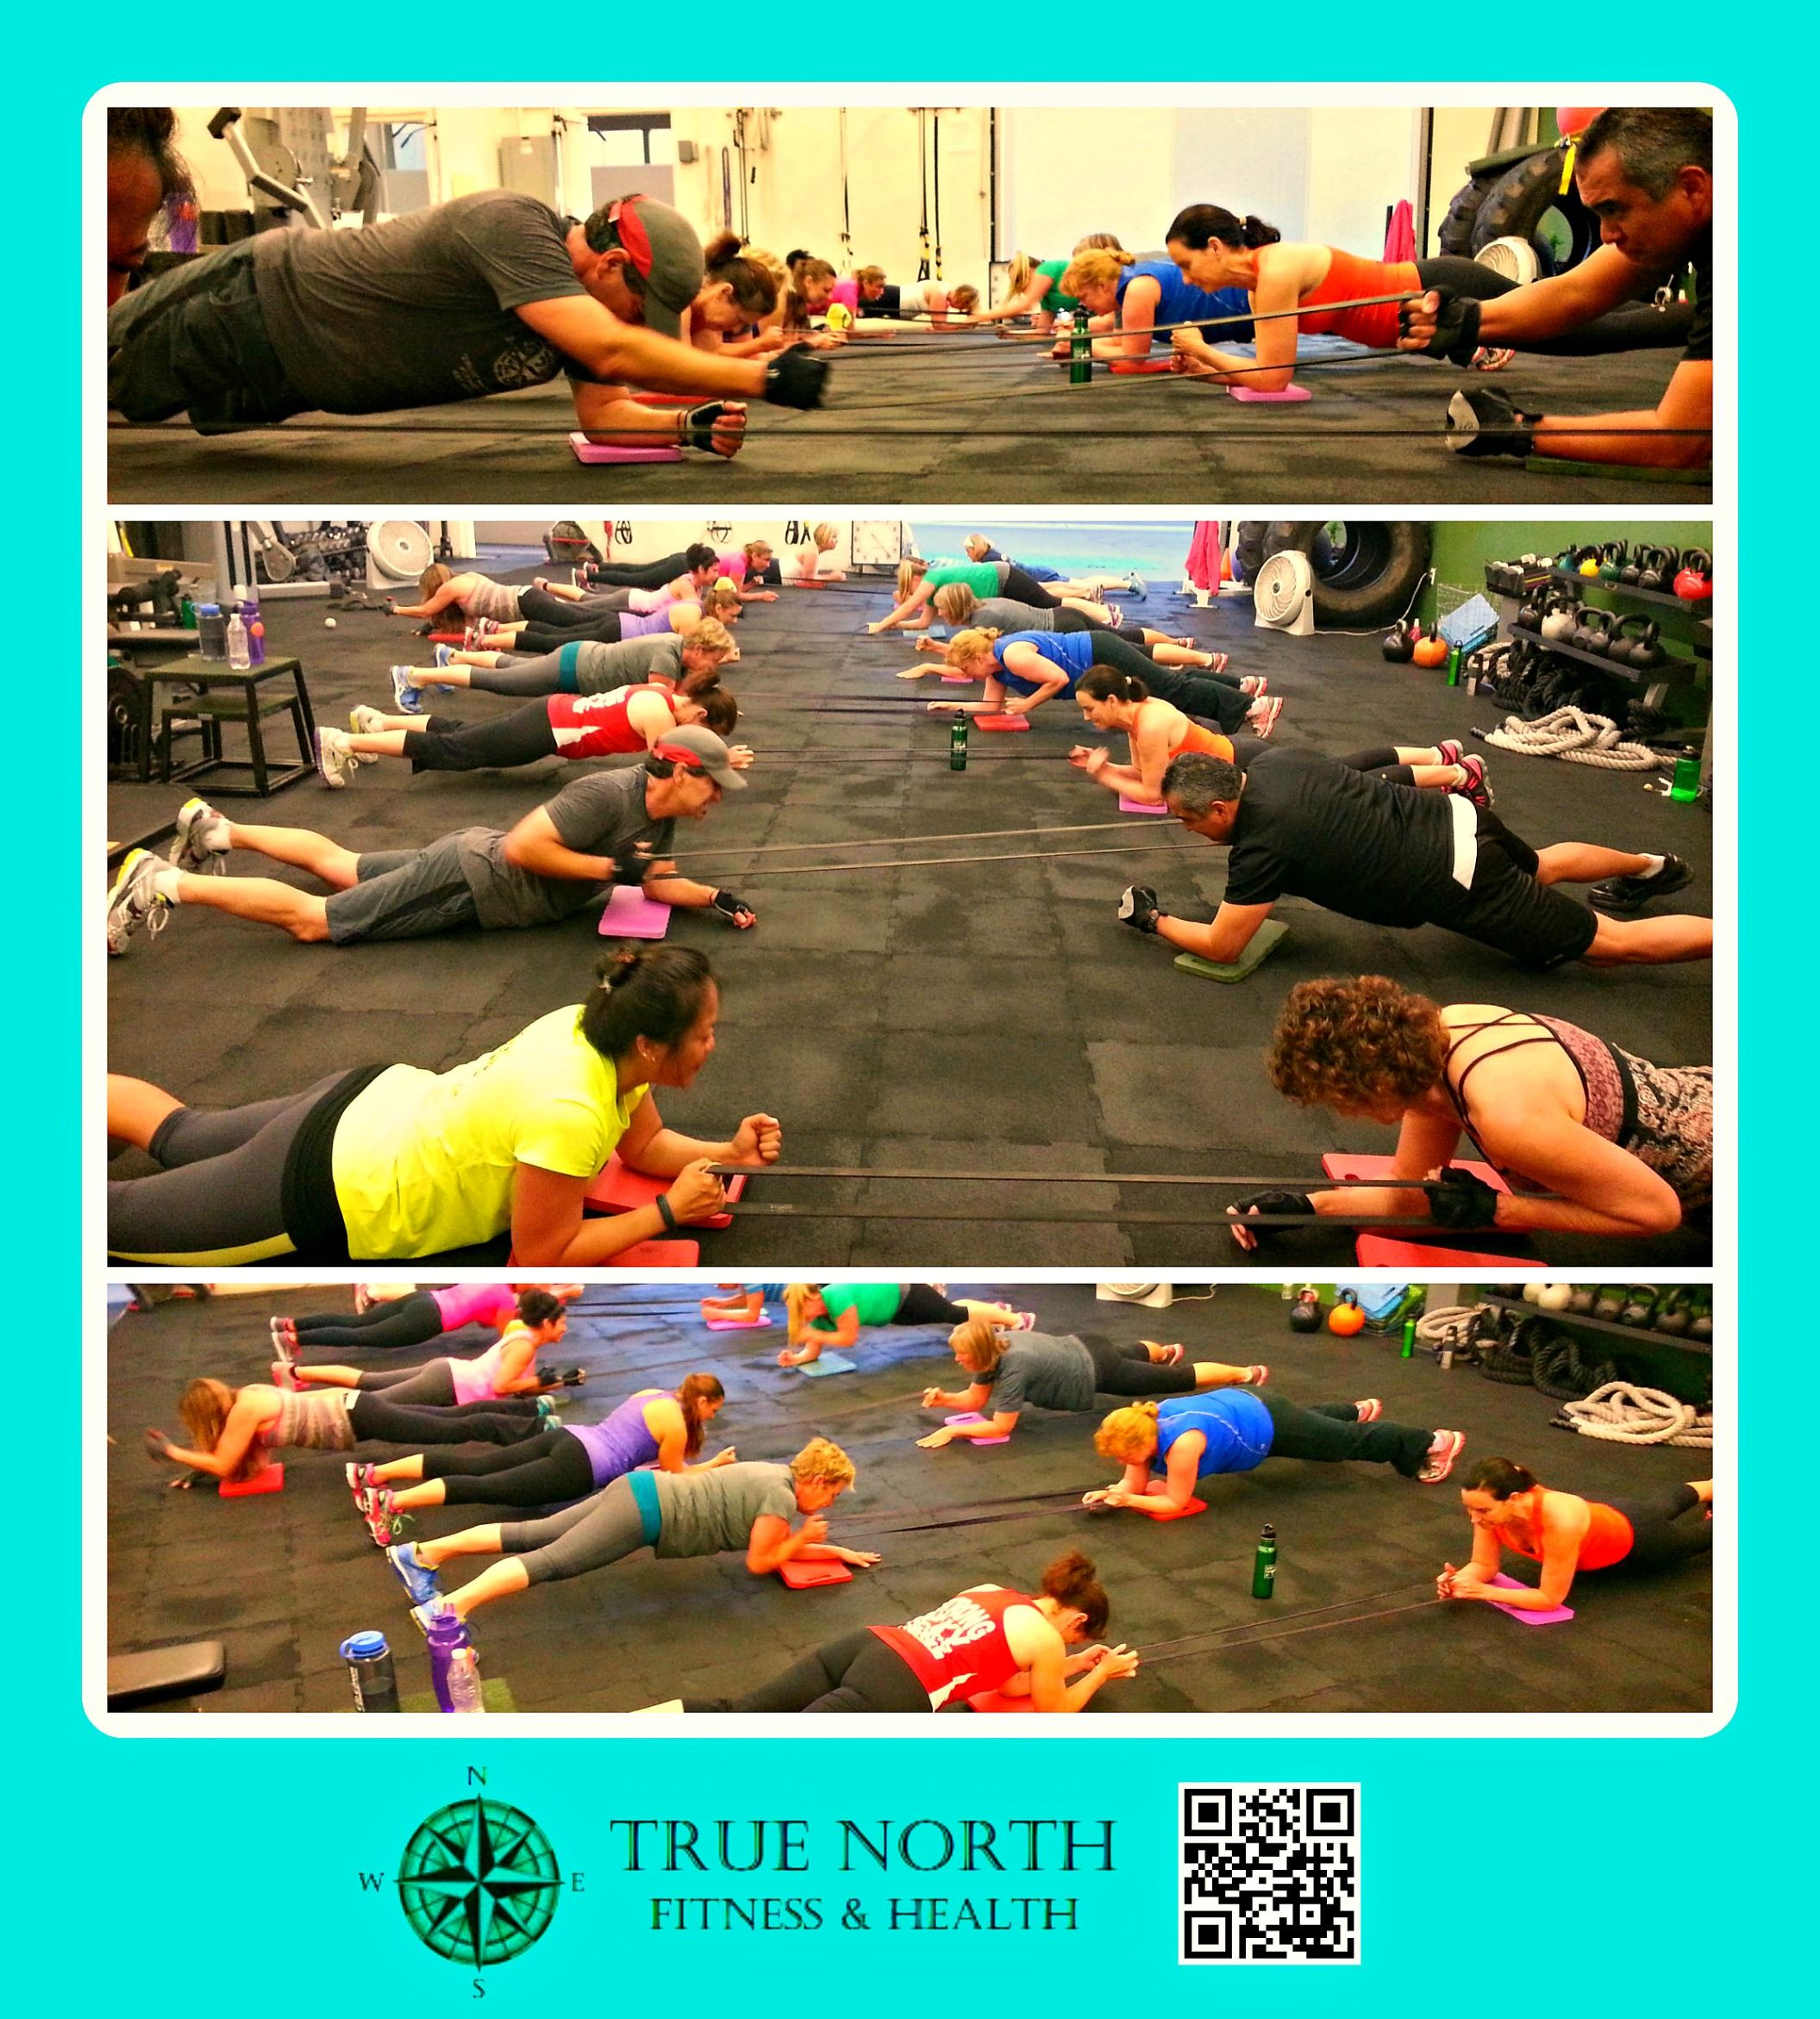 Group Class - Total Body Strength - Partner Rows. #tnfh #fitforlife